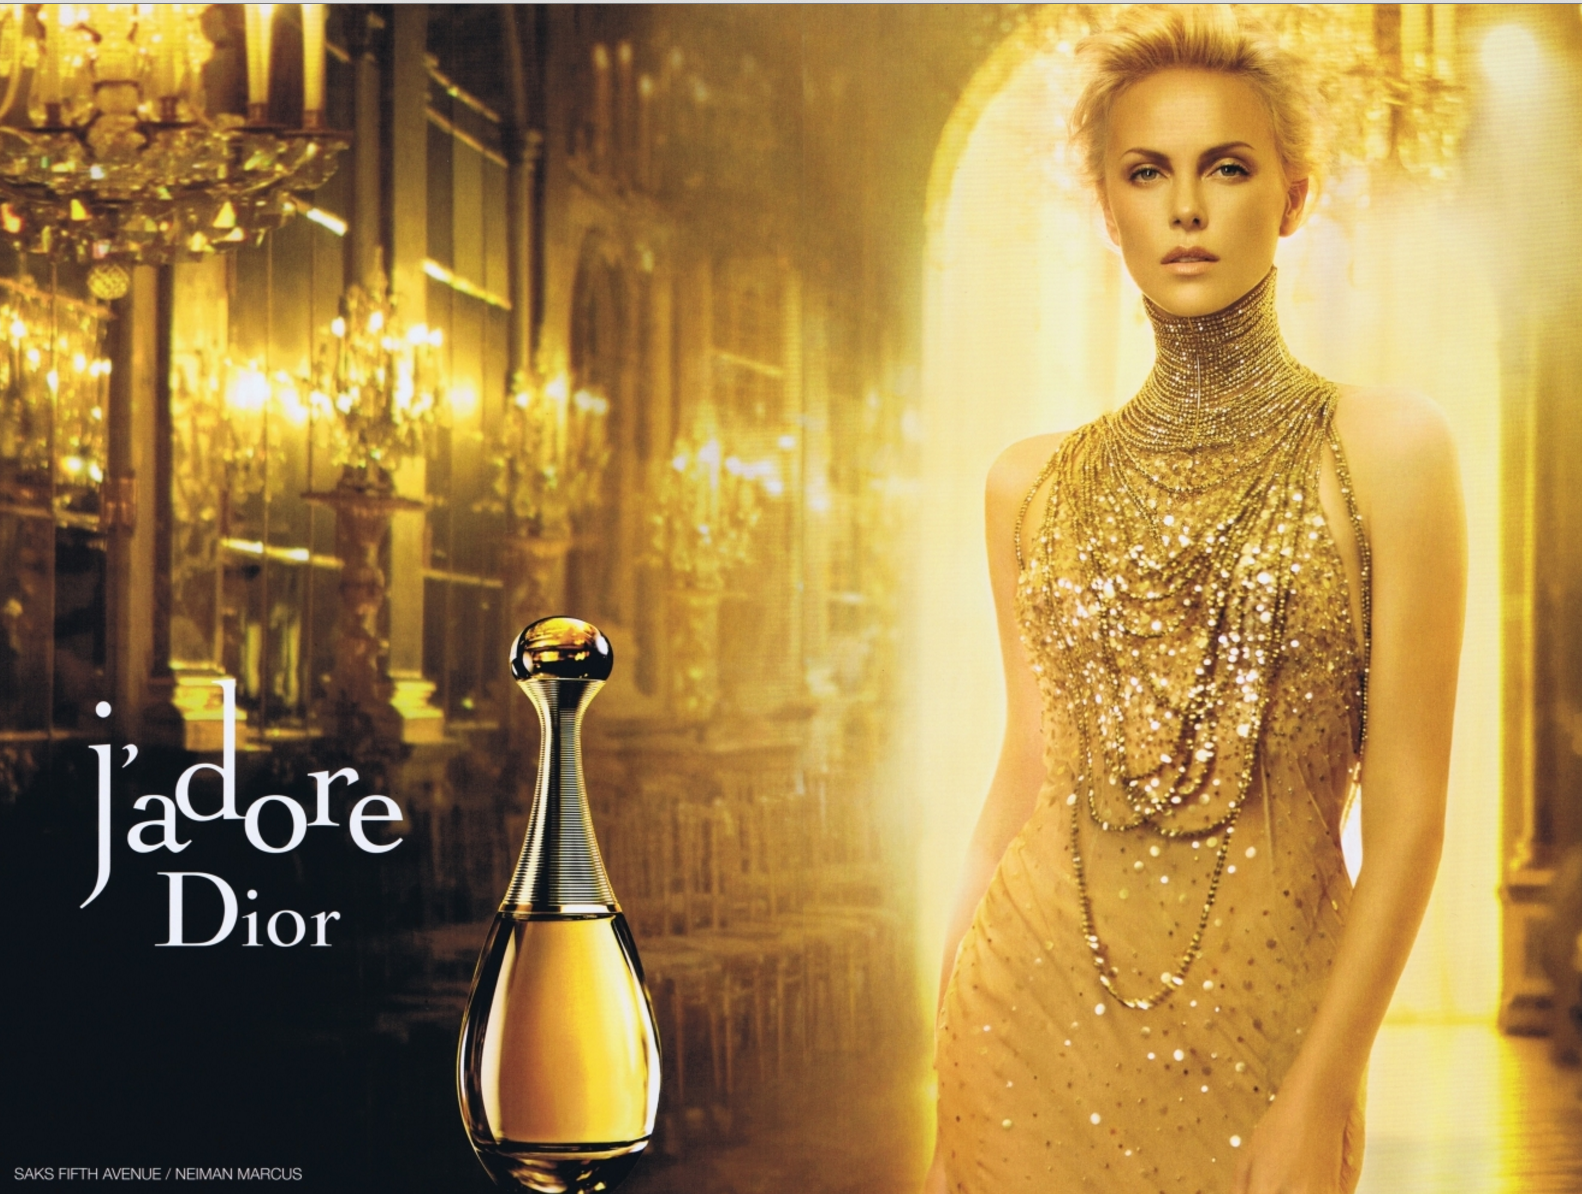 Charlize Theron dior